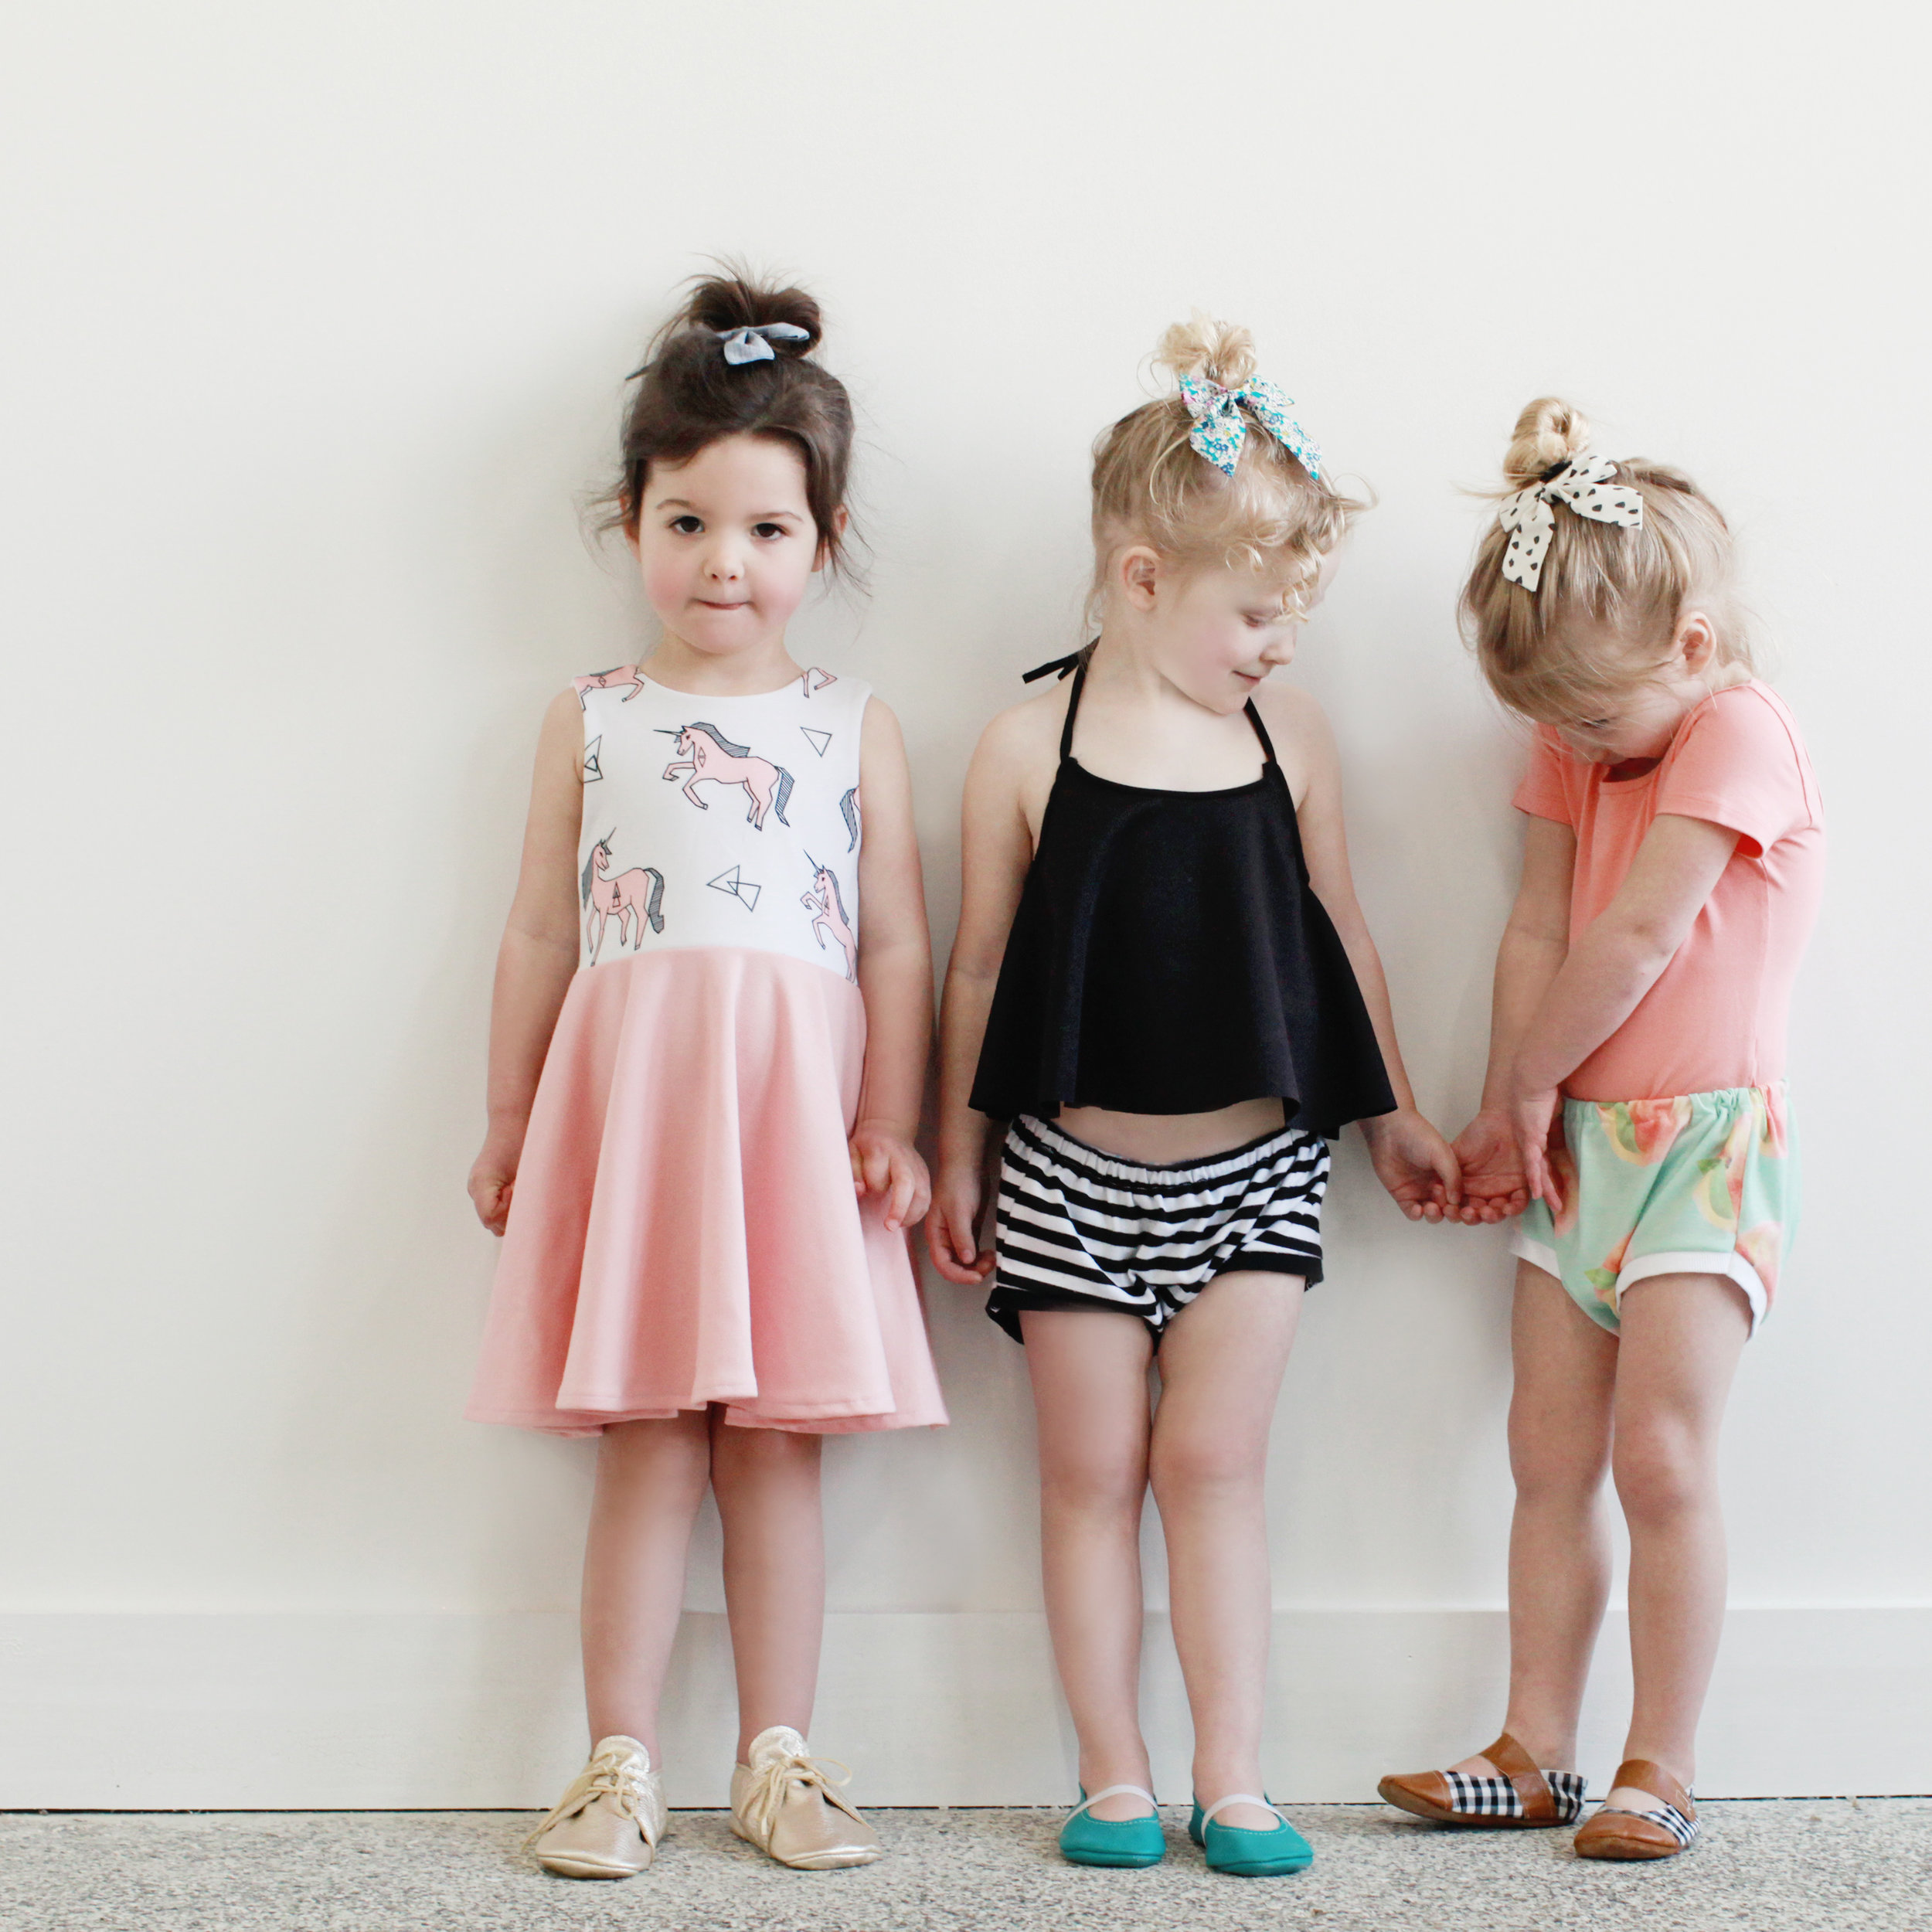 Everyone always asks me how I got my mini models group started - here are the OGs - my nieces and my best friends' daughters!